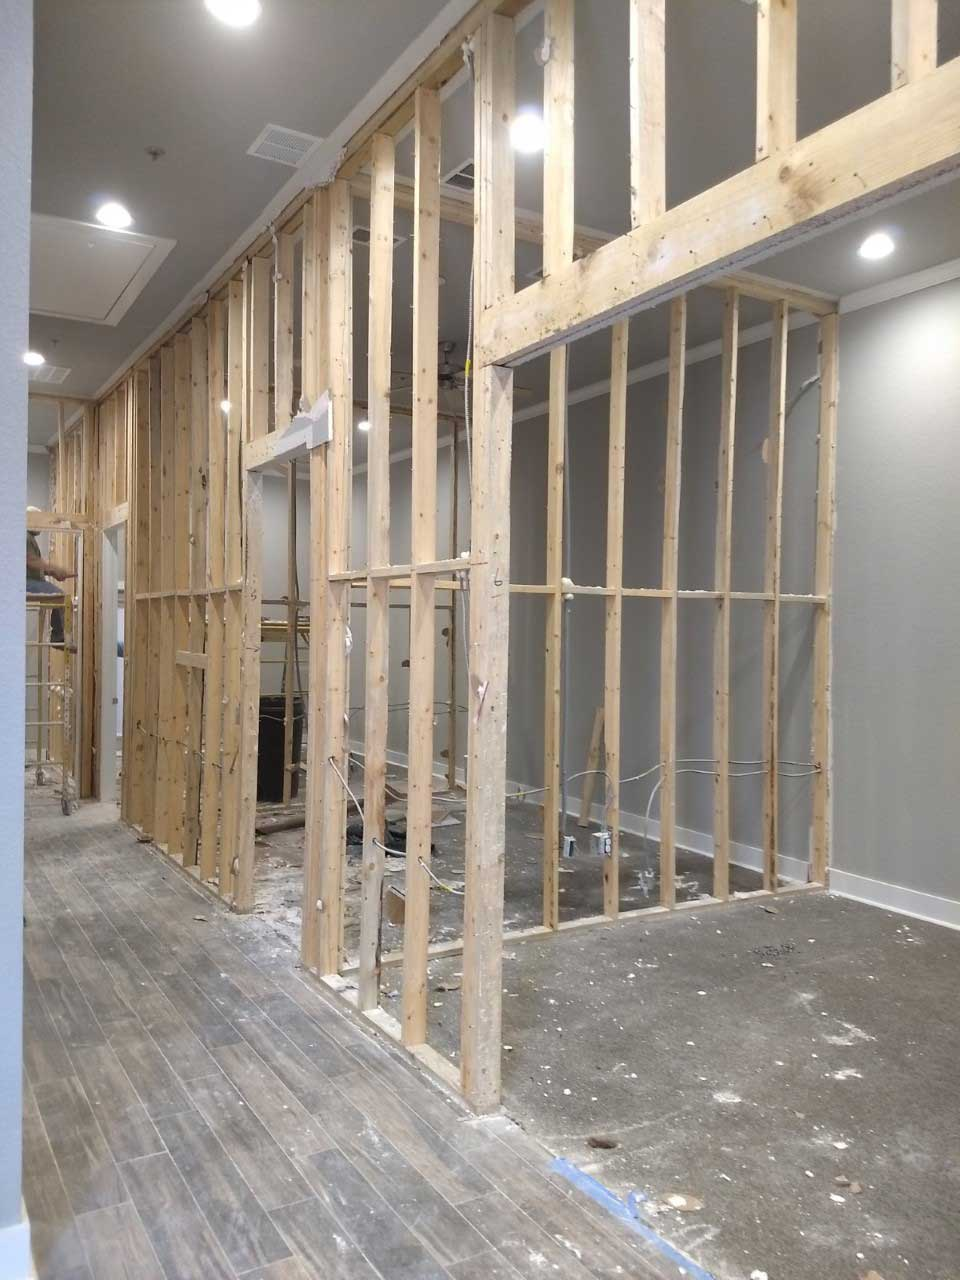 RX- Pharma During Office Space Renovation - Remodel Existing Locations